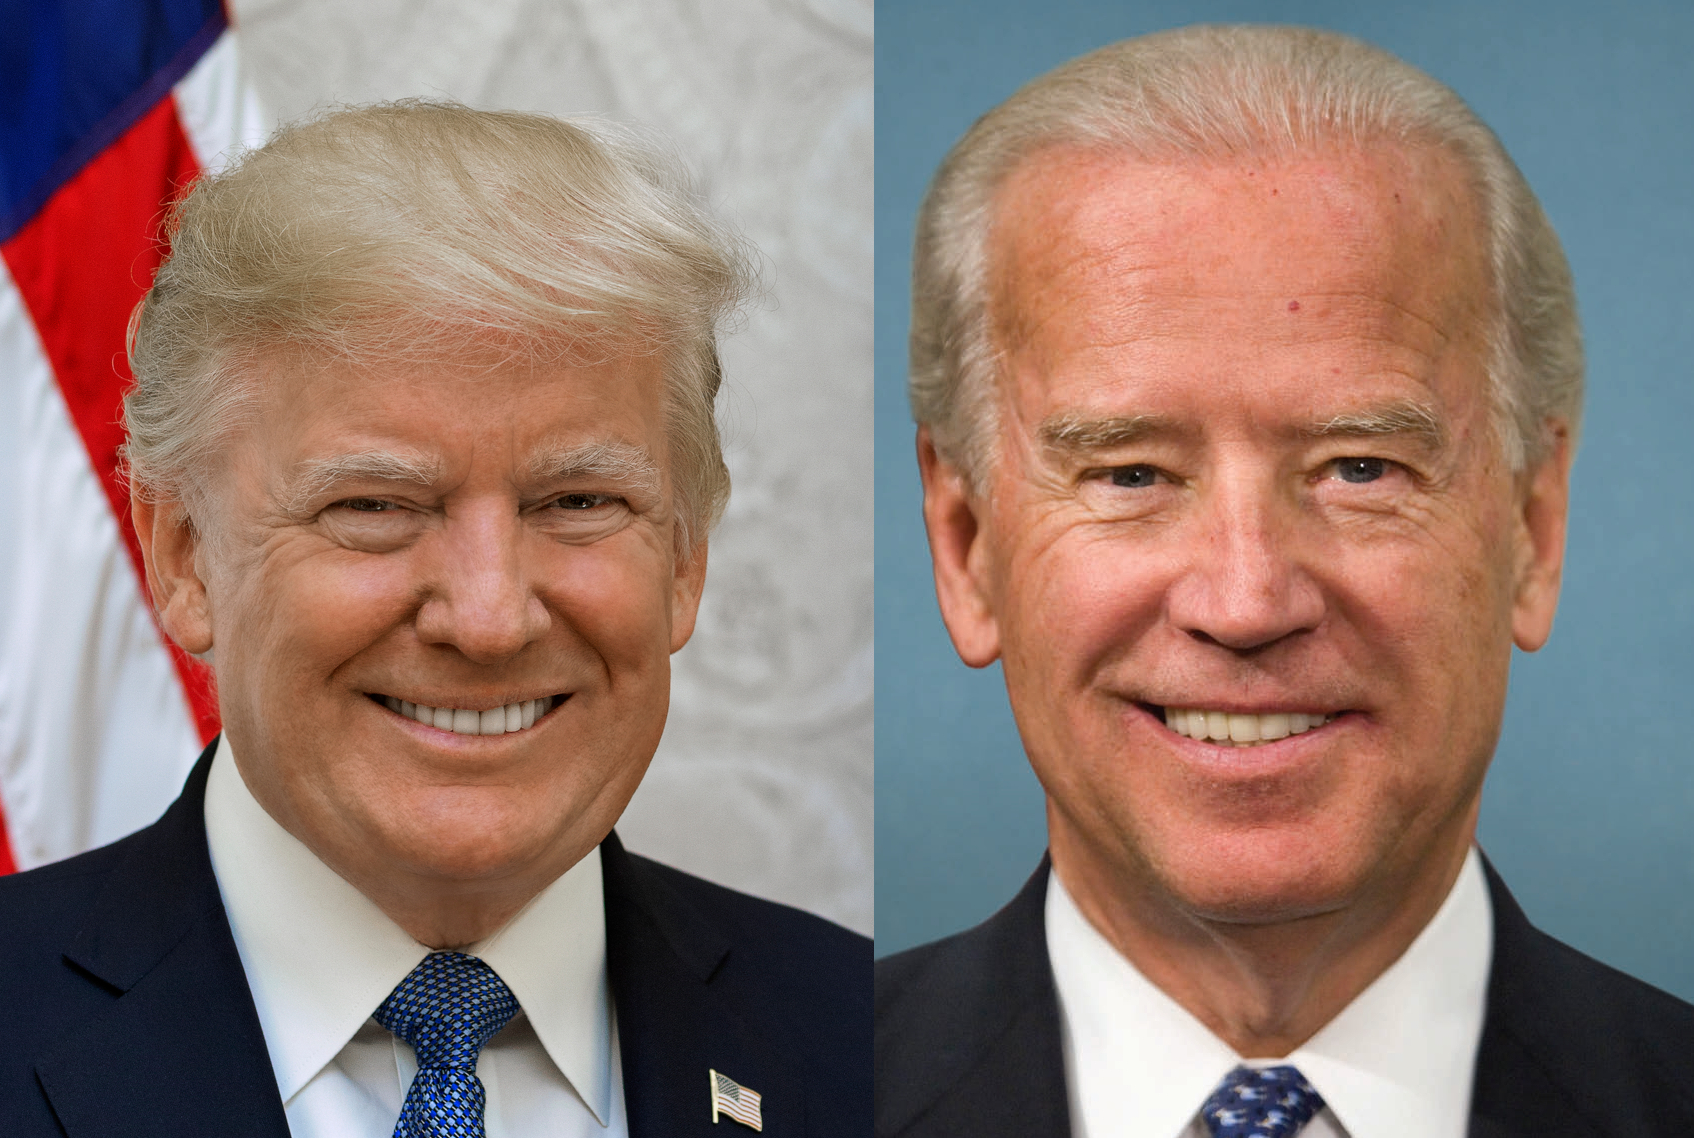 two candidates' headshots side-by-side: President Donald Trump on the Left, and former Vice President Joe Biden on the right. Both men are smiling, and both are wearing suits.